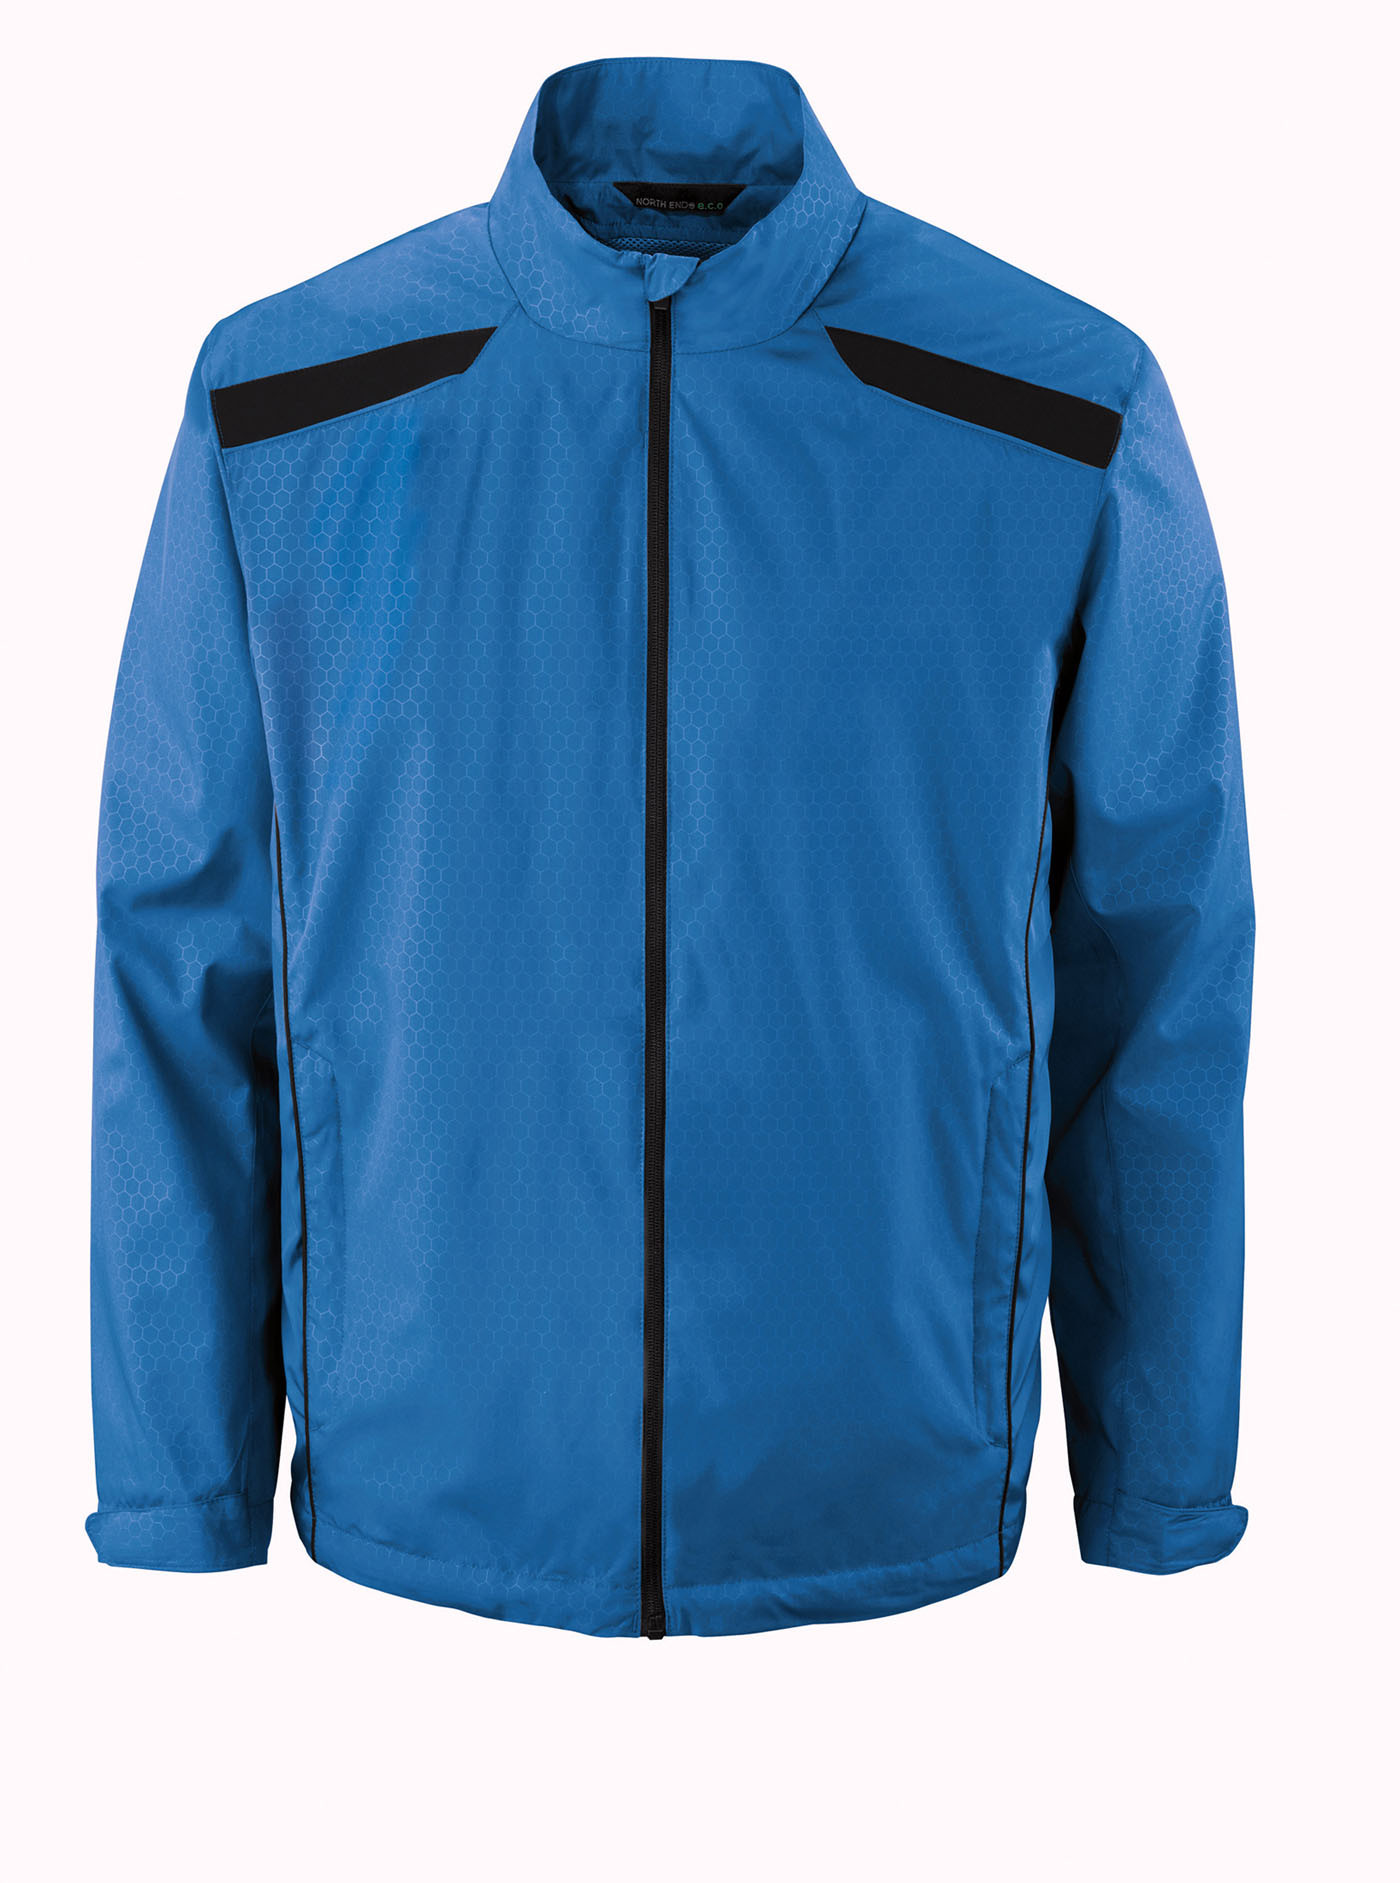 Ash City e.c.o Outerwear 88188 - Tempo Jacket Men's ...